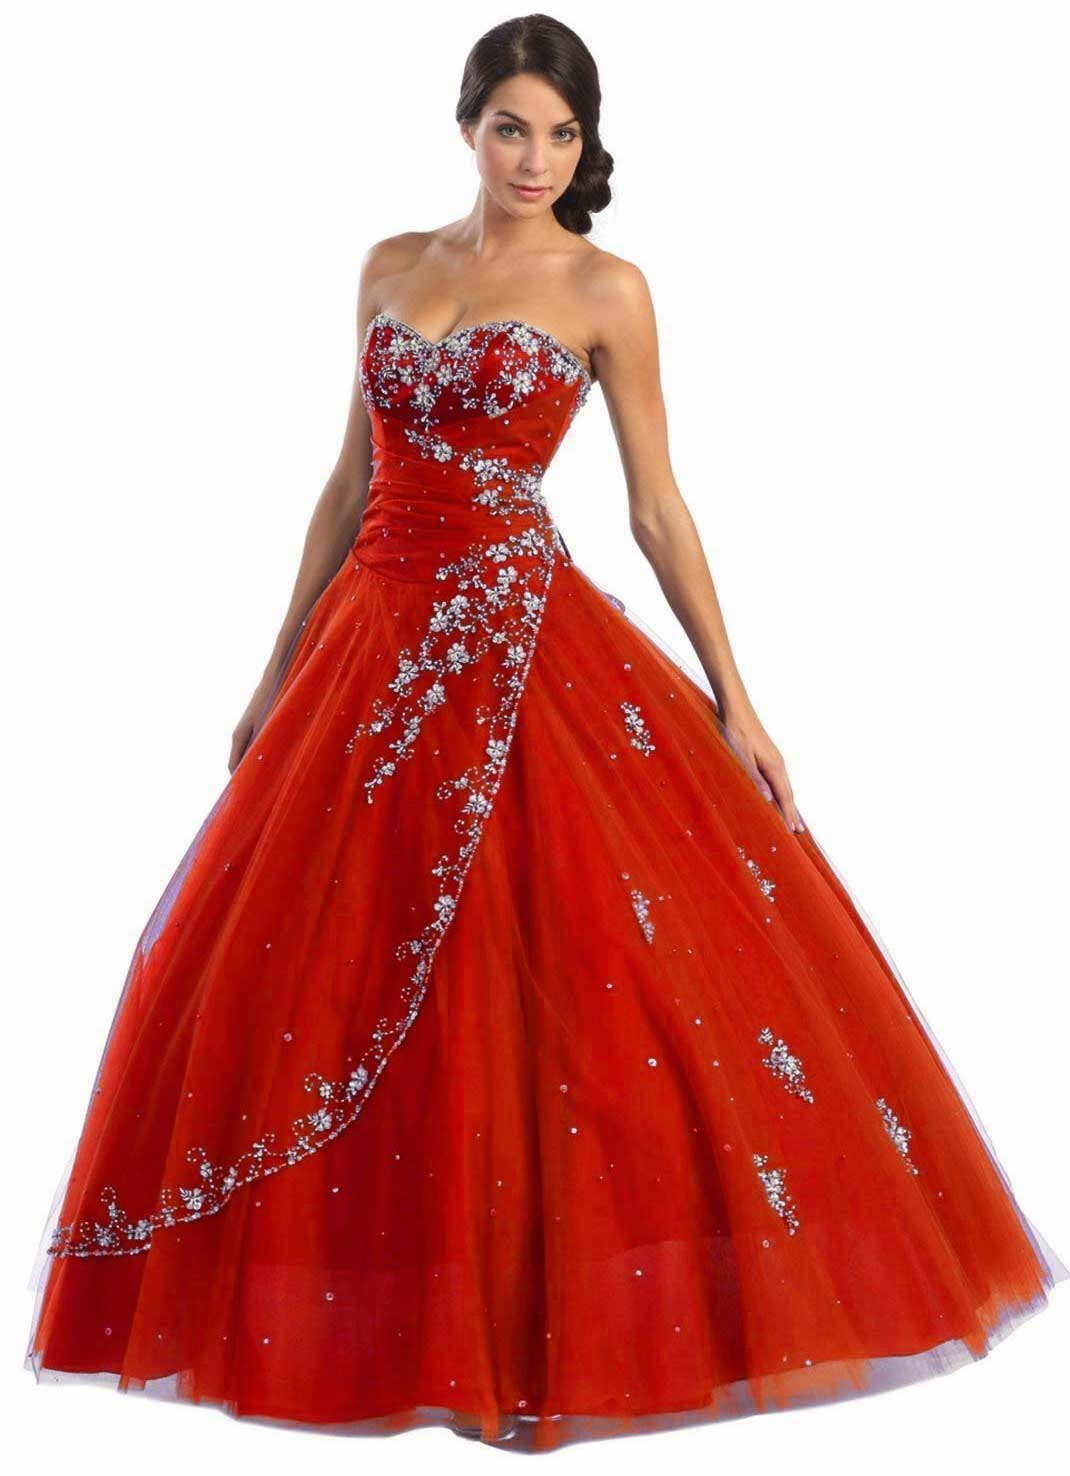 Red Wedding Dresses Photos HD Concepts Ideas